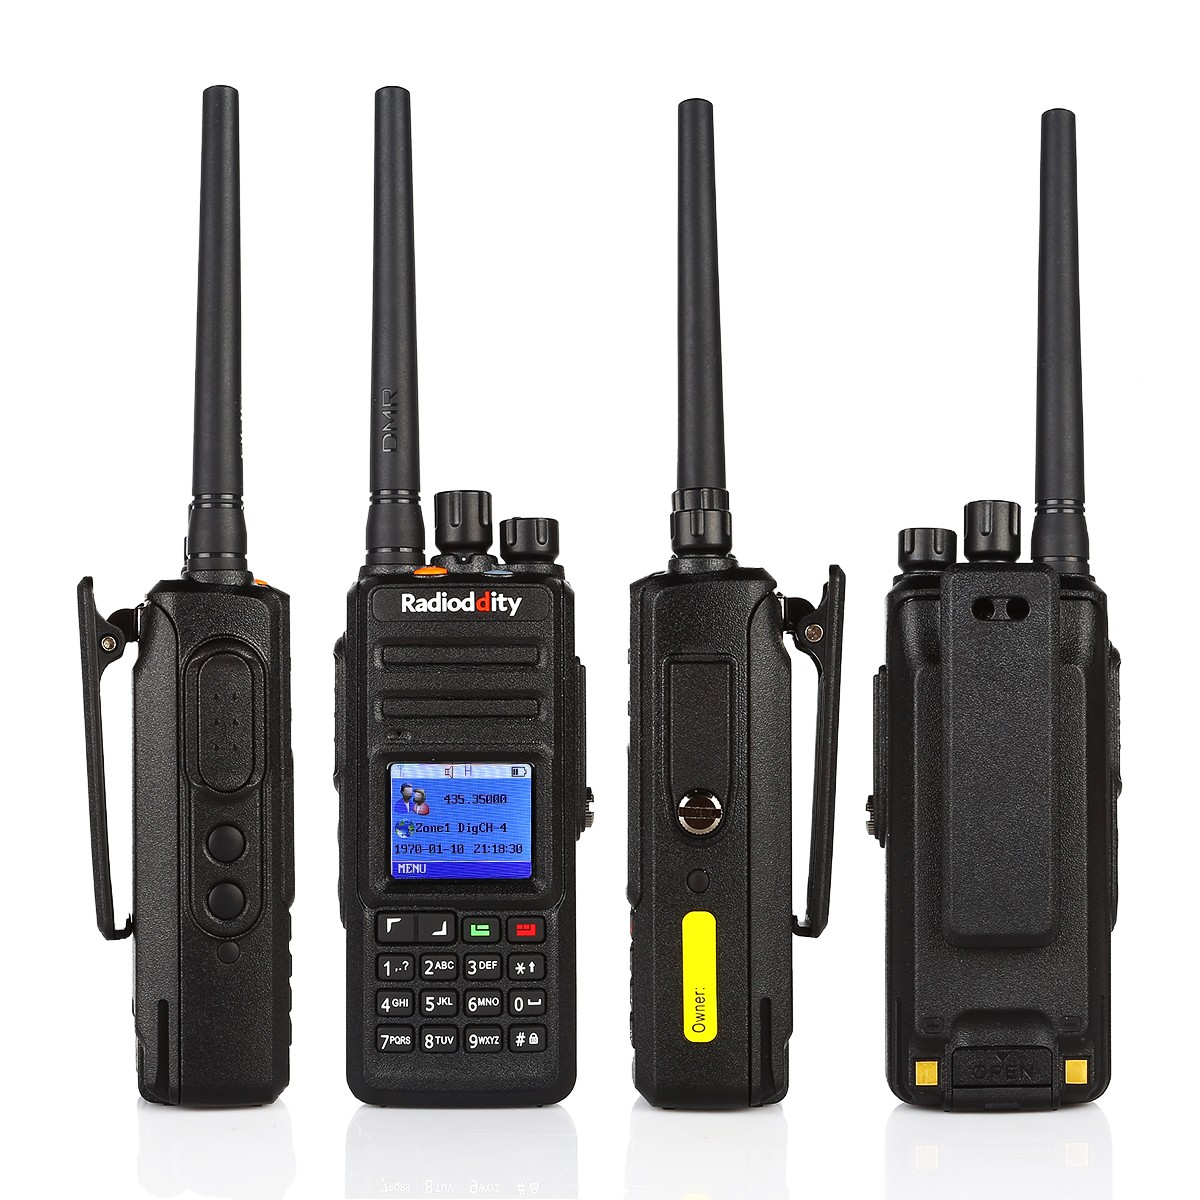 www_radioddity_com-radioddity-gd-55-uhf-waterproof-dmr-digital-radio-with-gps-function-10w-with-2800mah-lithium-polymer-li-po-battery-33